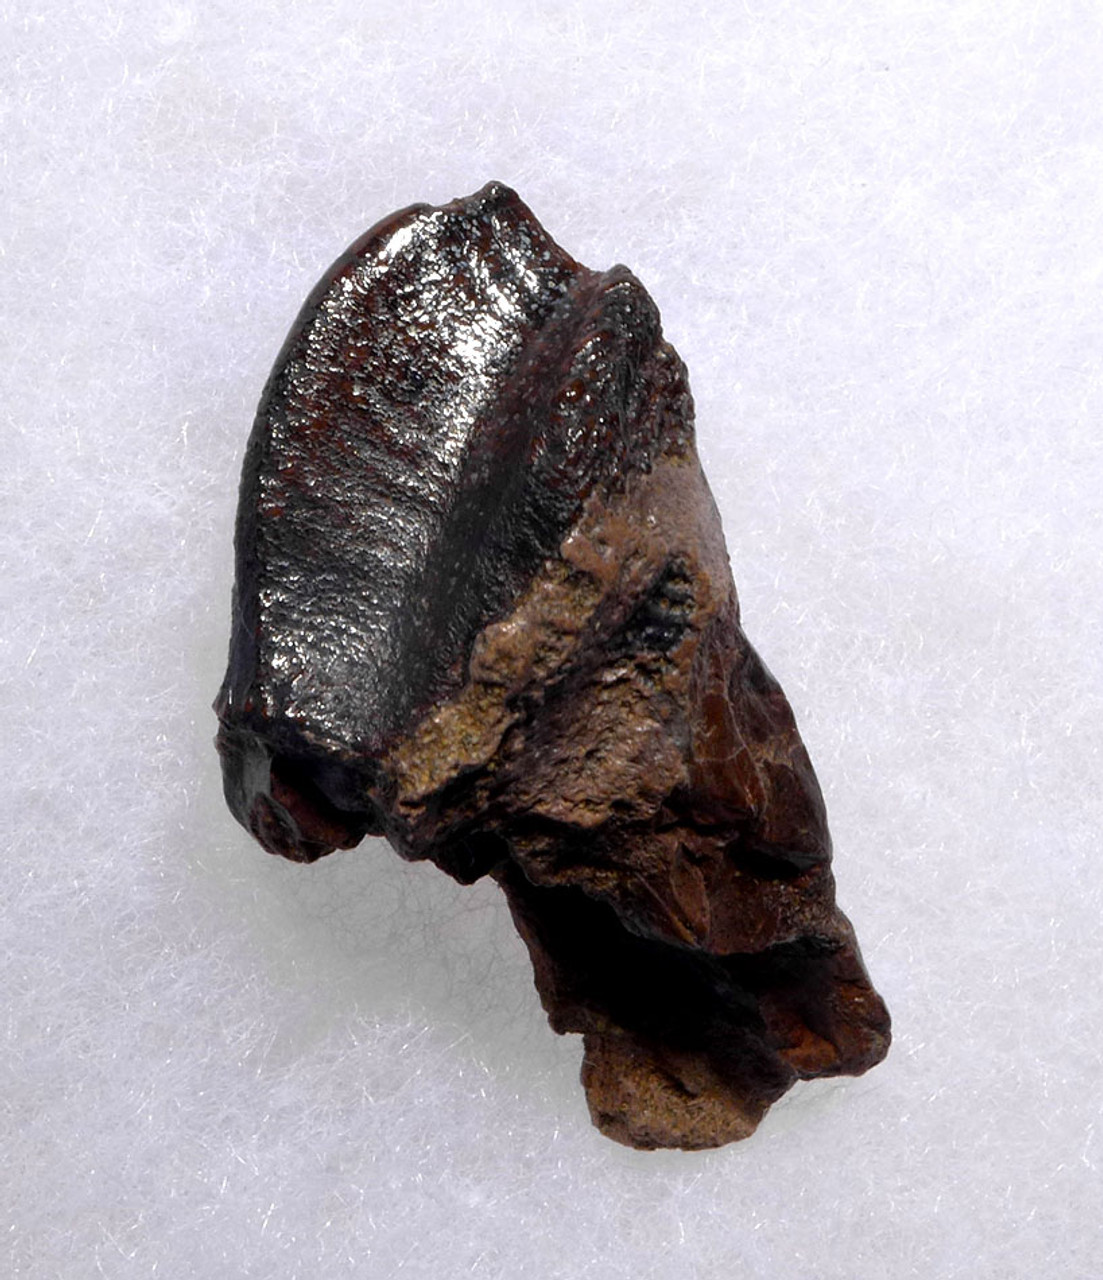 OUR LARGEST EVER GIANT TRICERATOPS DINOSAUR TOOTH WITH HUGE CROWN AND PARTIAL ROOT *DT19-041